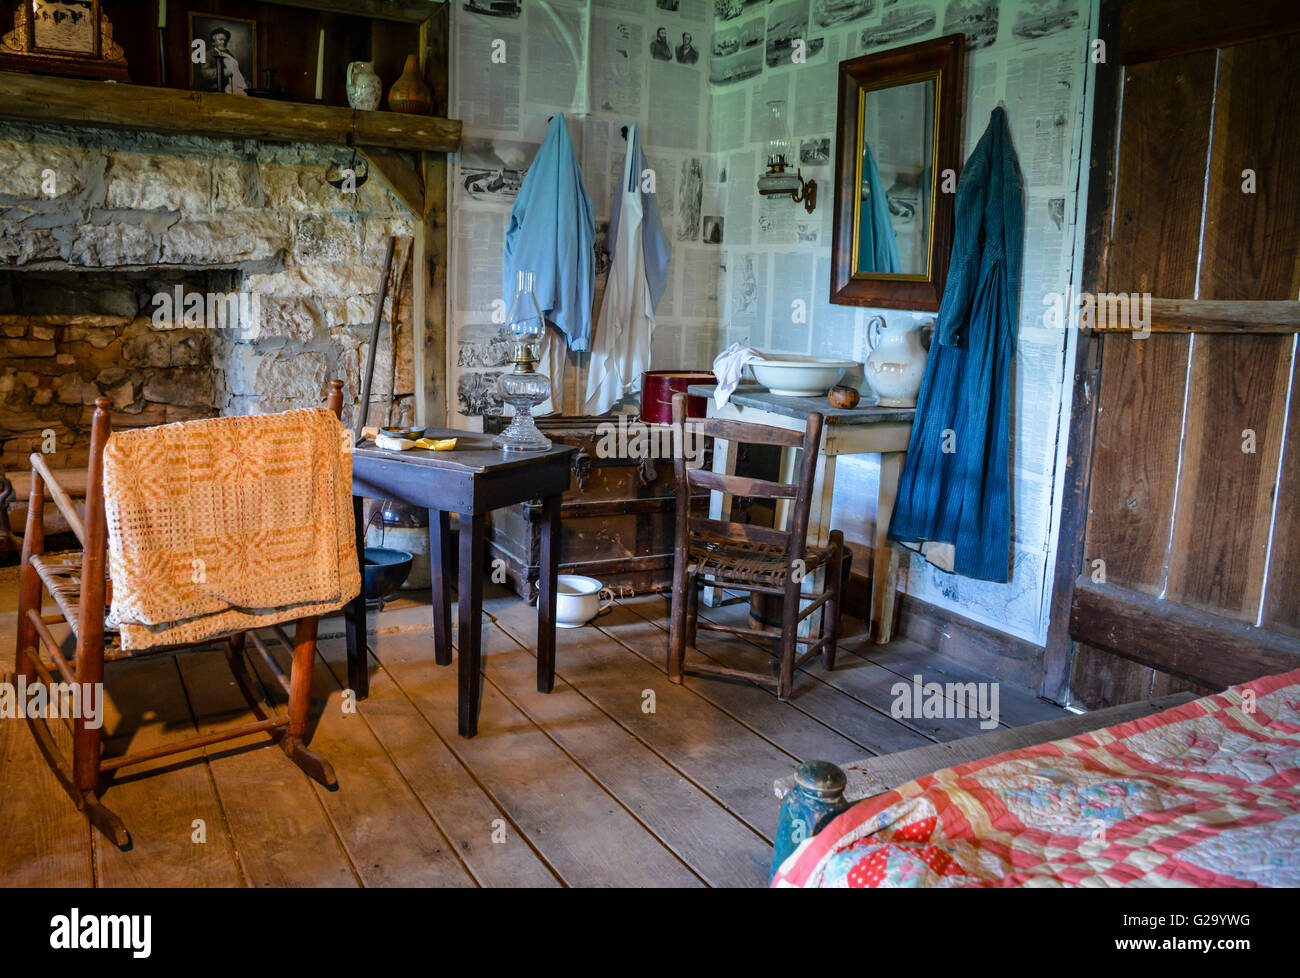 An Interior view of a rustically furnished log cabin with fireplace and furnishings depicting lifestyle of 19th - Stock Image